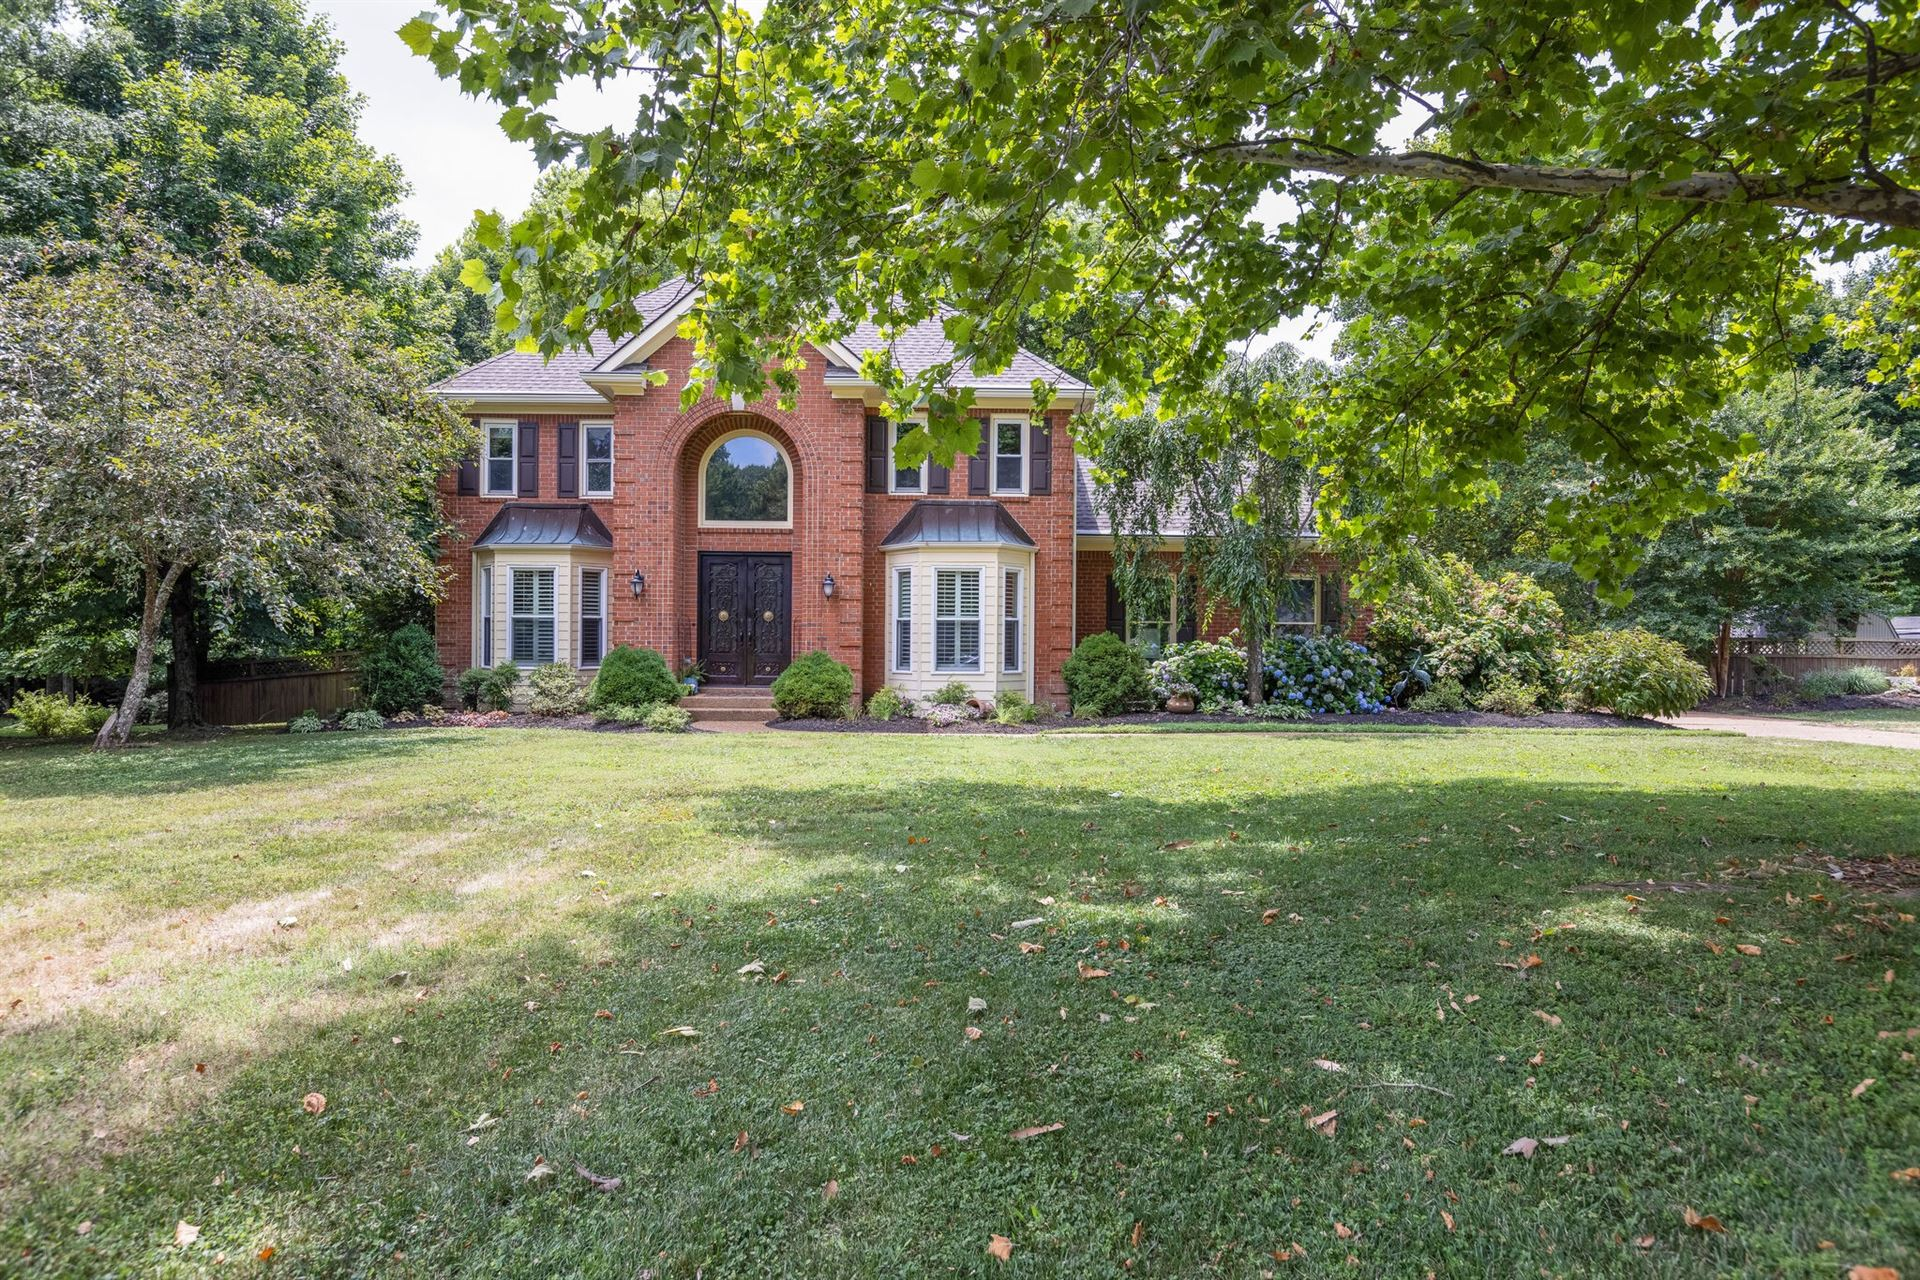 Photo of 1405 Glenview Dr, Brentwood, TN 37027 (MLS # 2271026)